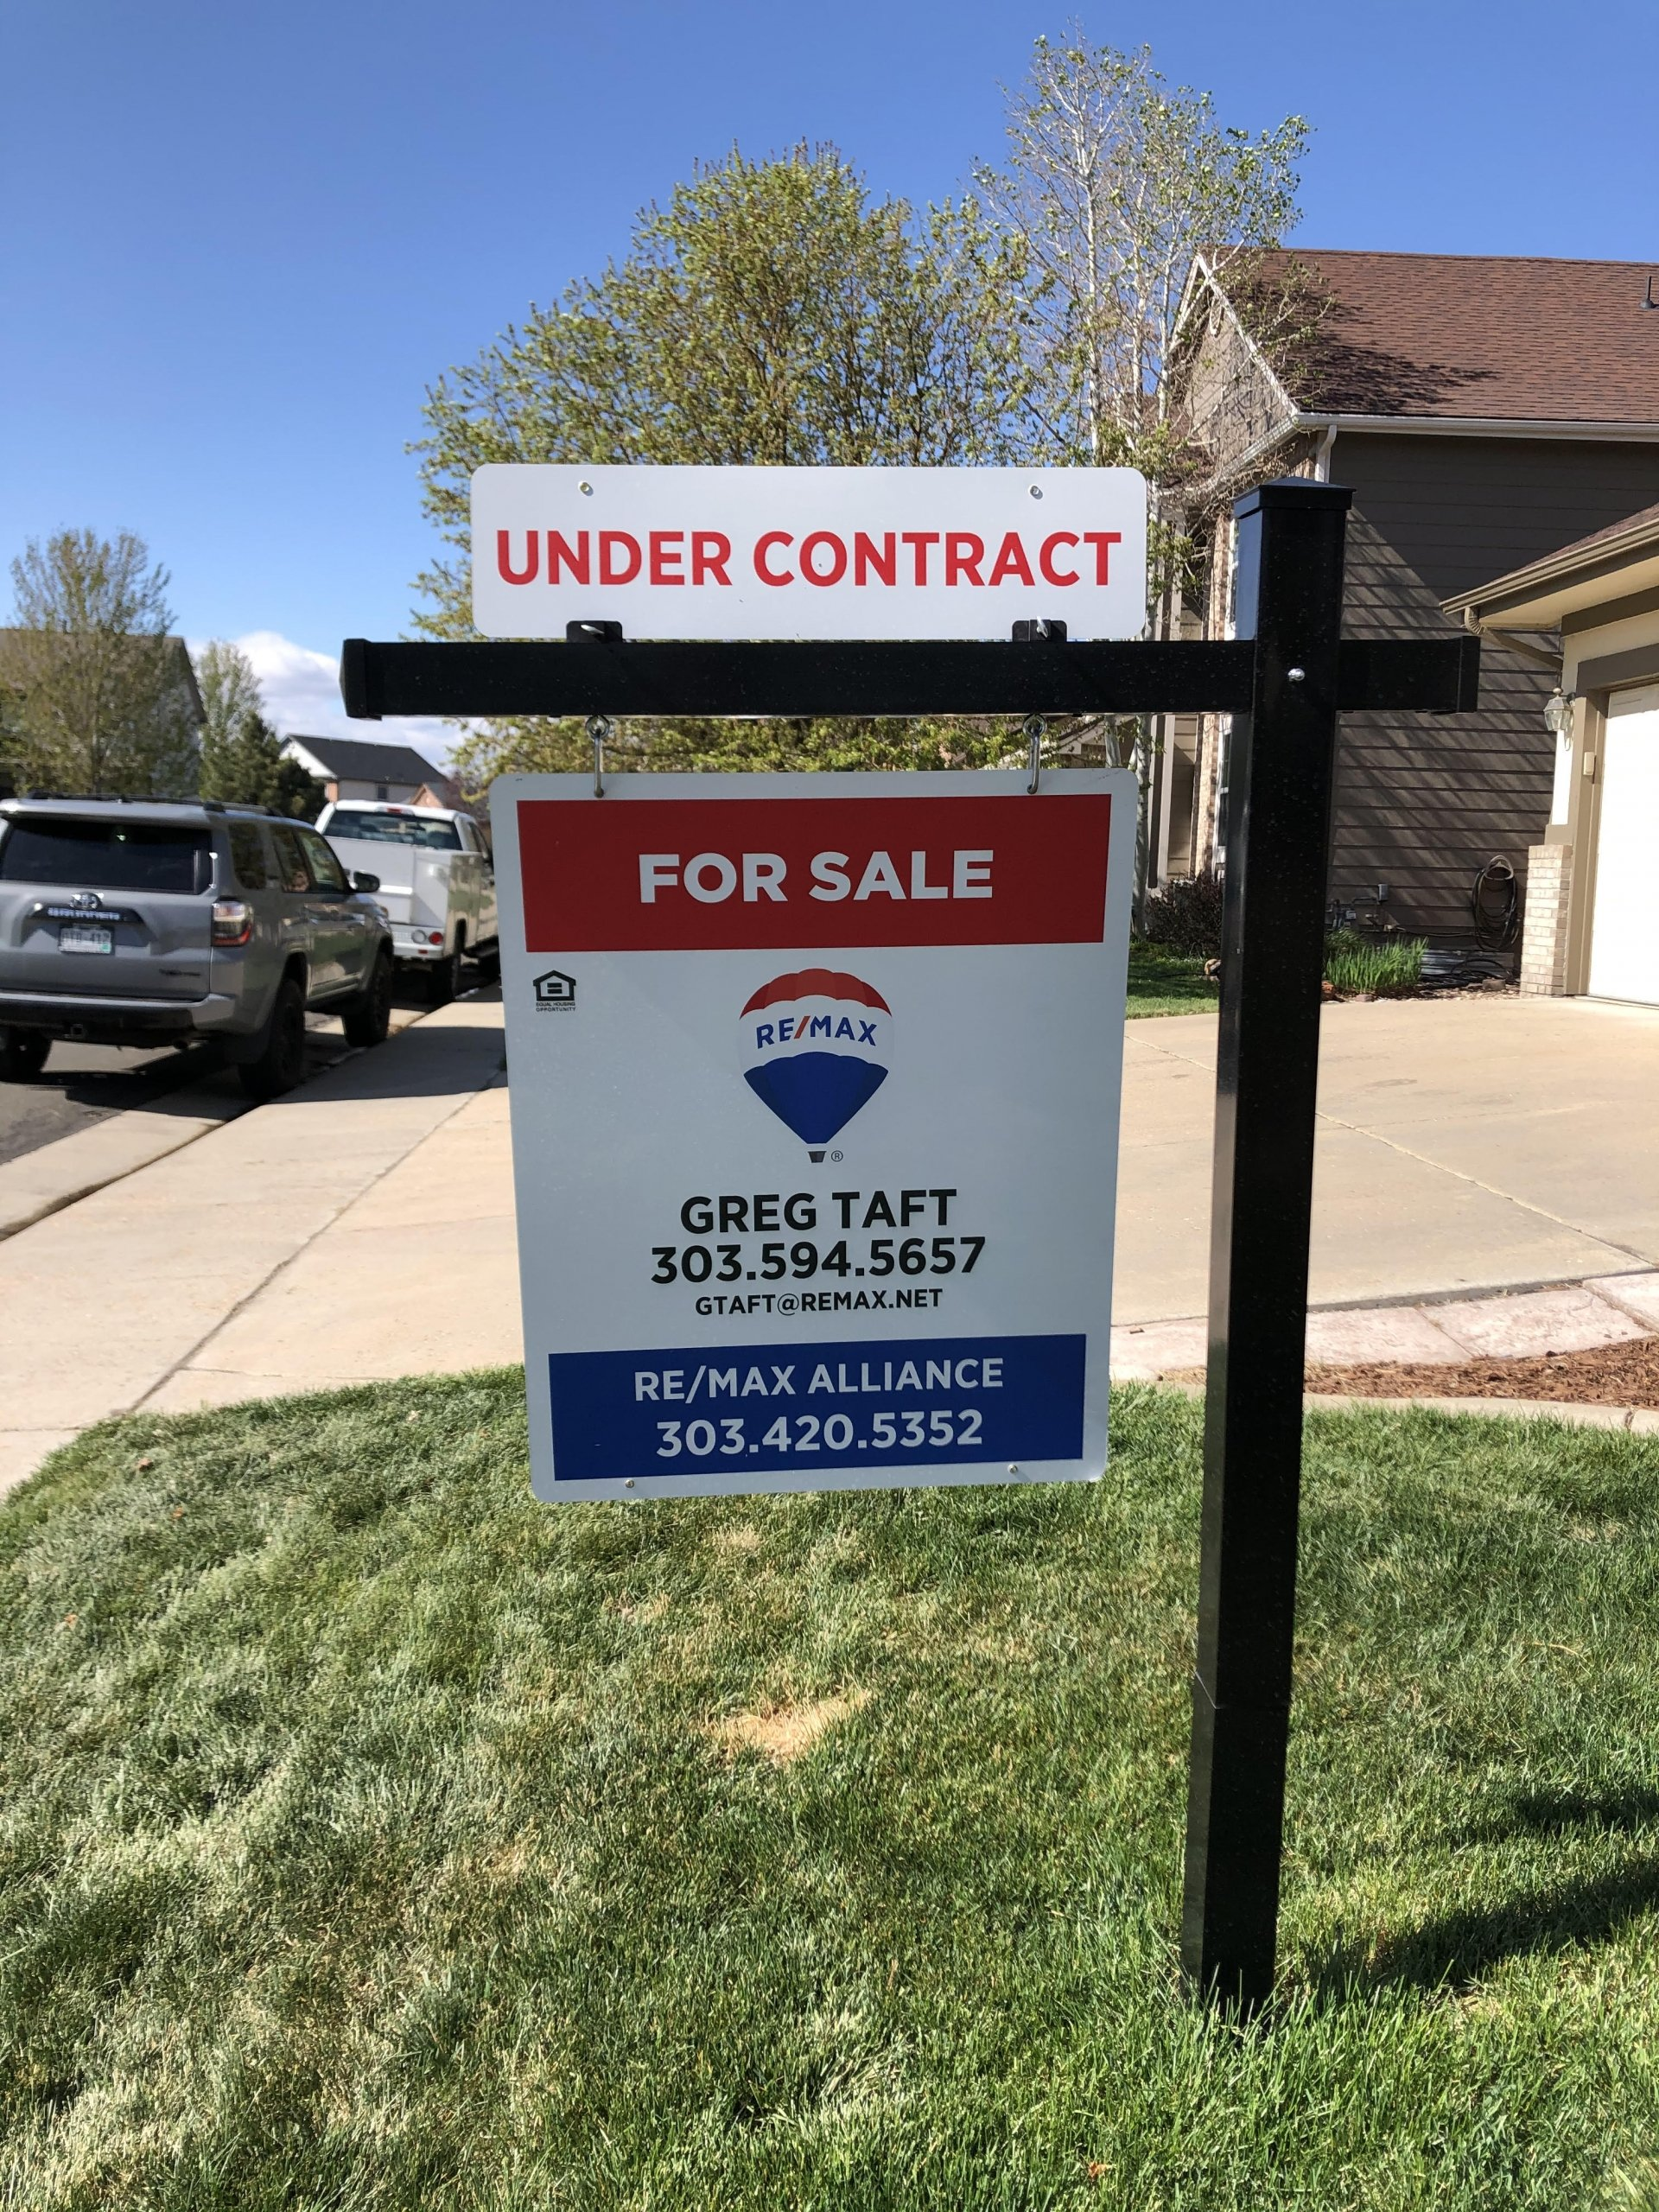 Hot Housing Market, Under Contract Realtor Sign, Black Post, Red White Blue Sign